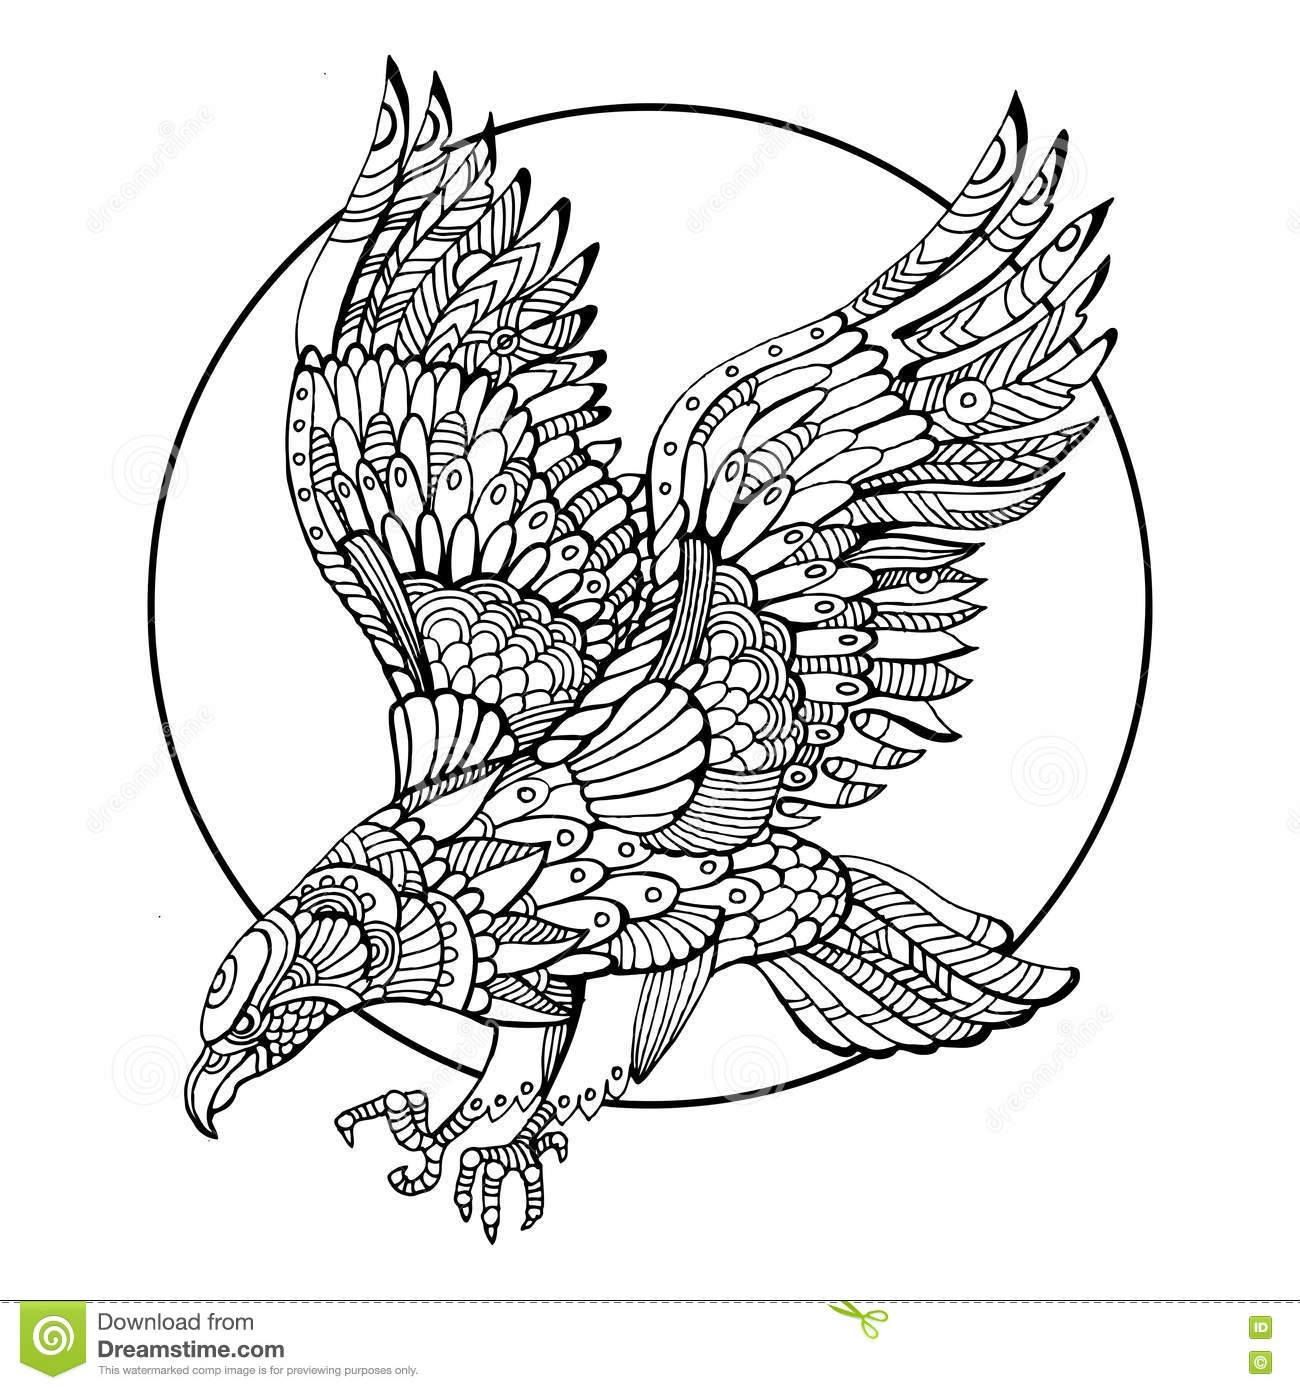 eagle adult coloring pages eagle coloring page adult google search coloring birds adult eagle pages coloring